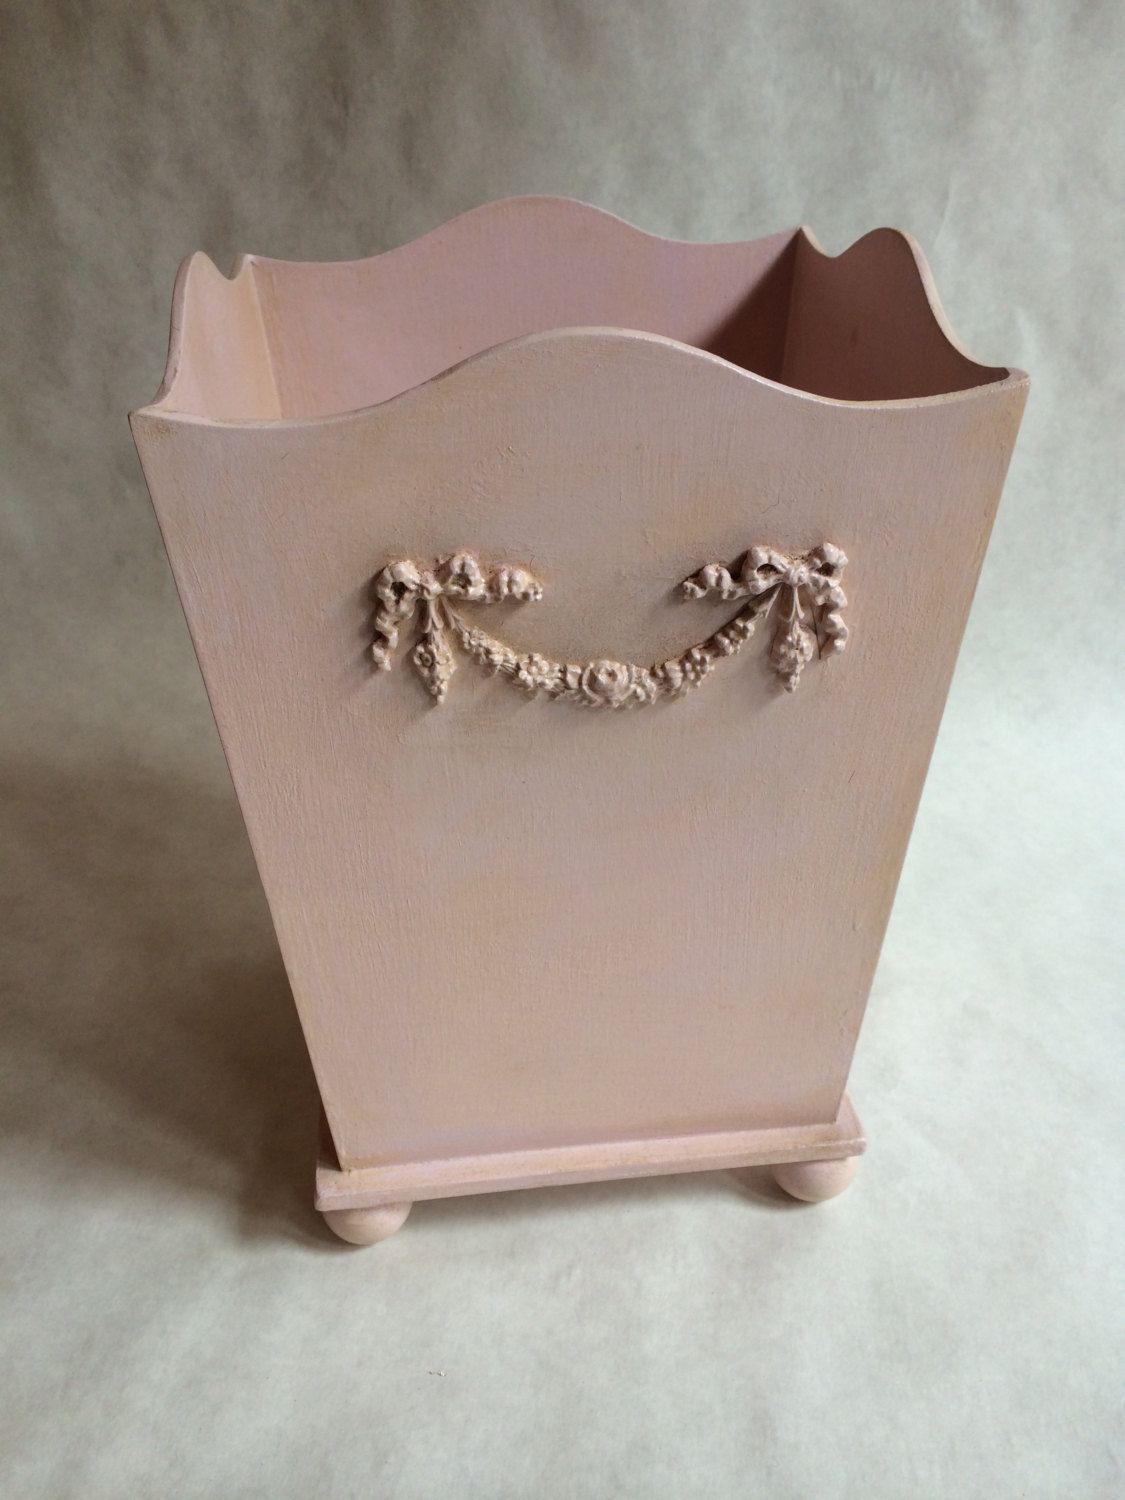 Shabby Chic Waste Baskets Waste Basket Shabby Chic Trash Can Hand Painted Waste Basket